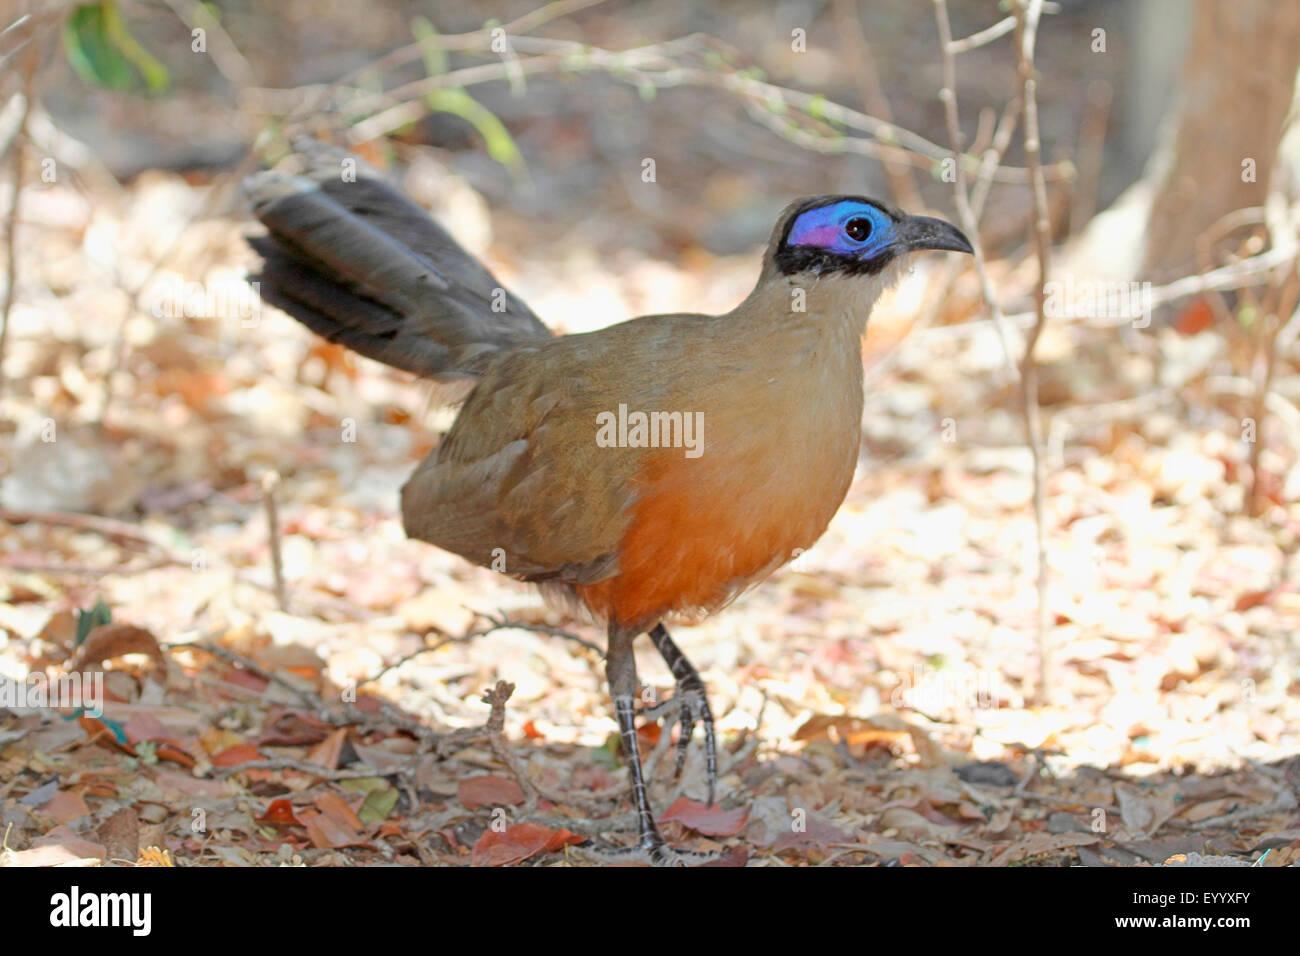 Giant Madagascar coucal, Giant coua (Coua gigas), walks on the ground, Madagascar, Zombitse-Vohibasia National Park - Stock Image